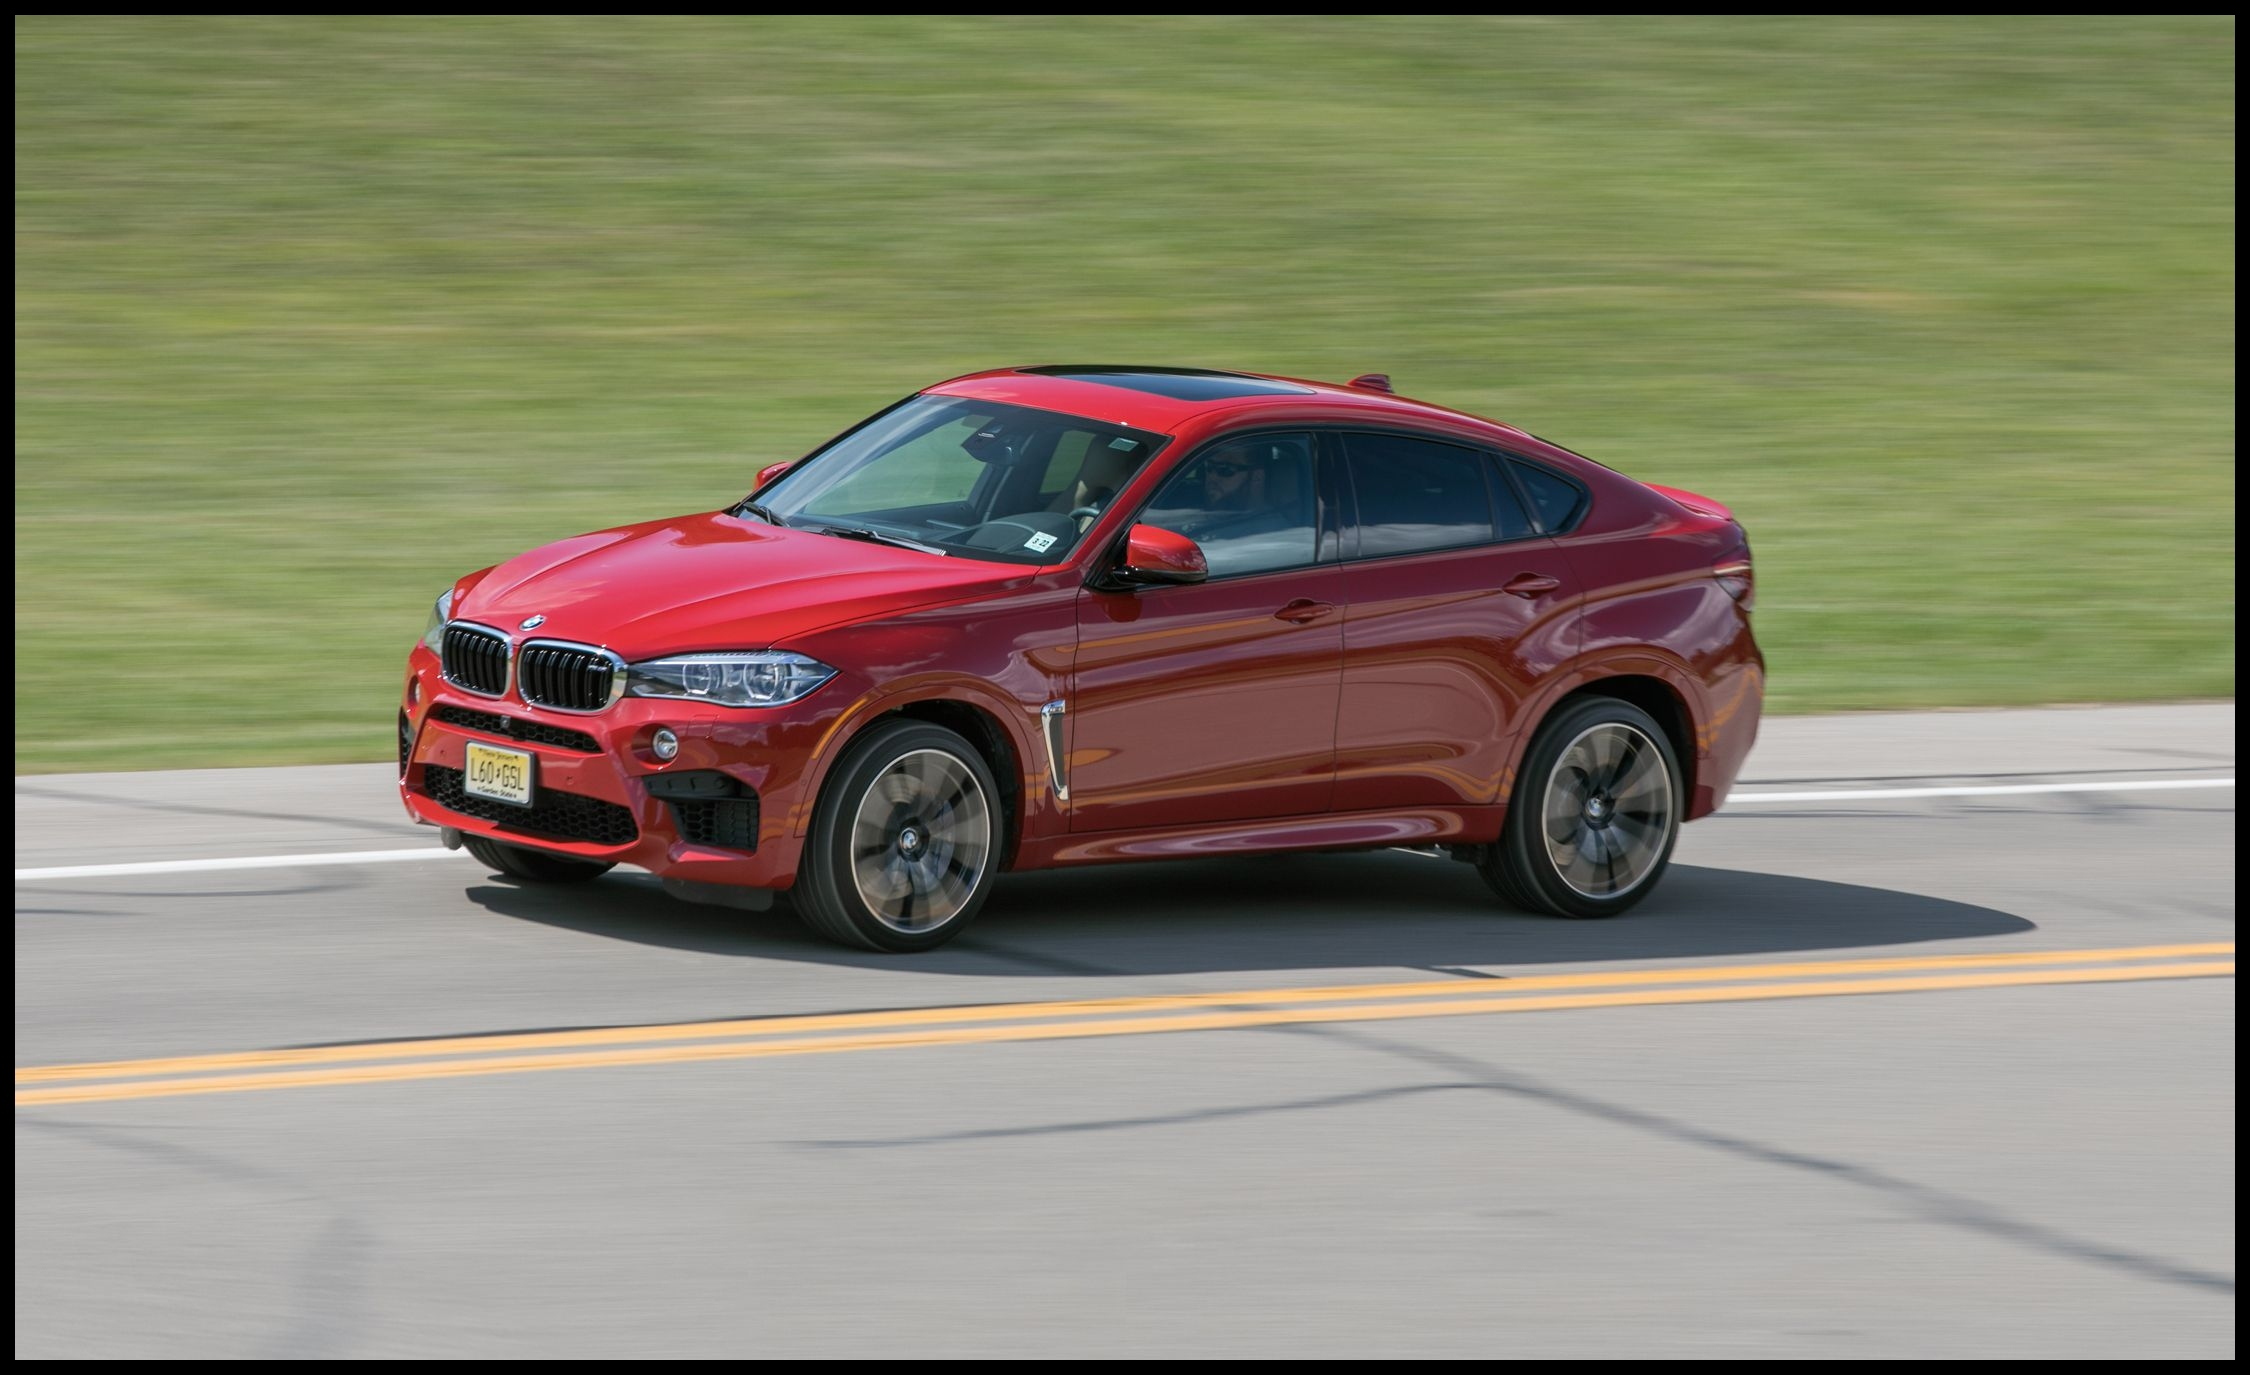 2017 bmw x6 m test review car and driver photo s original